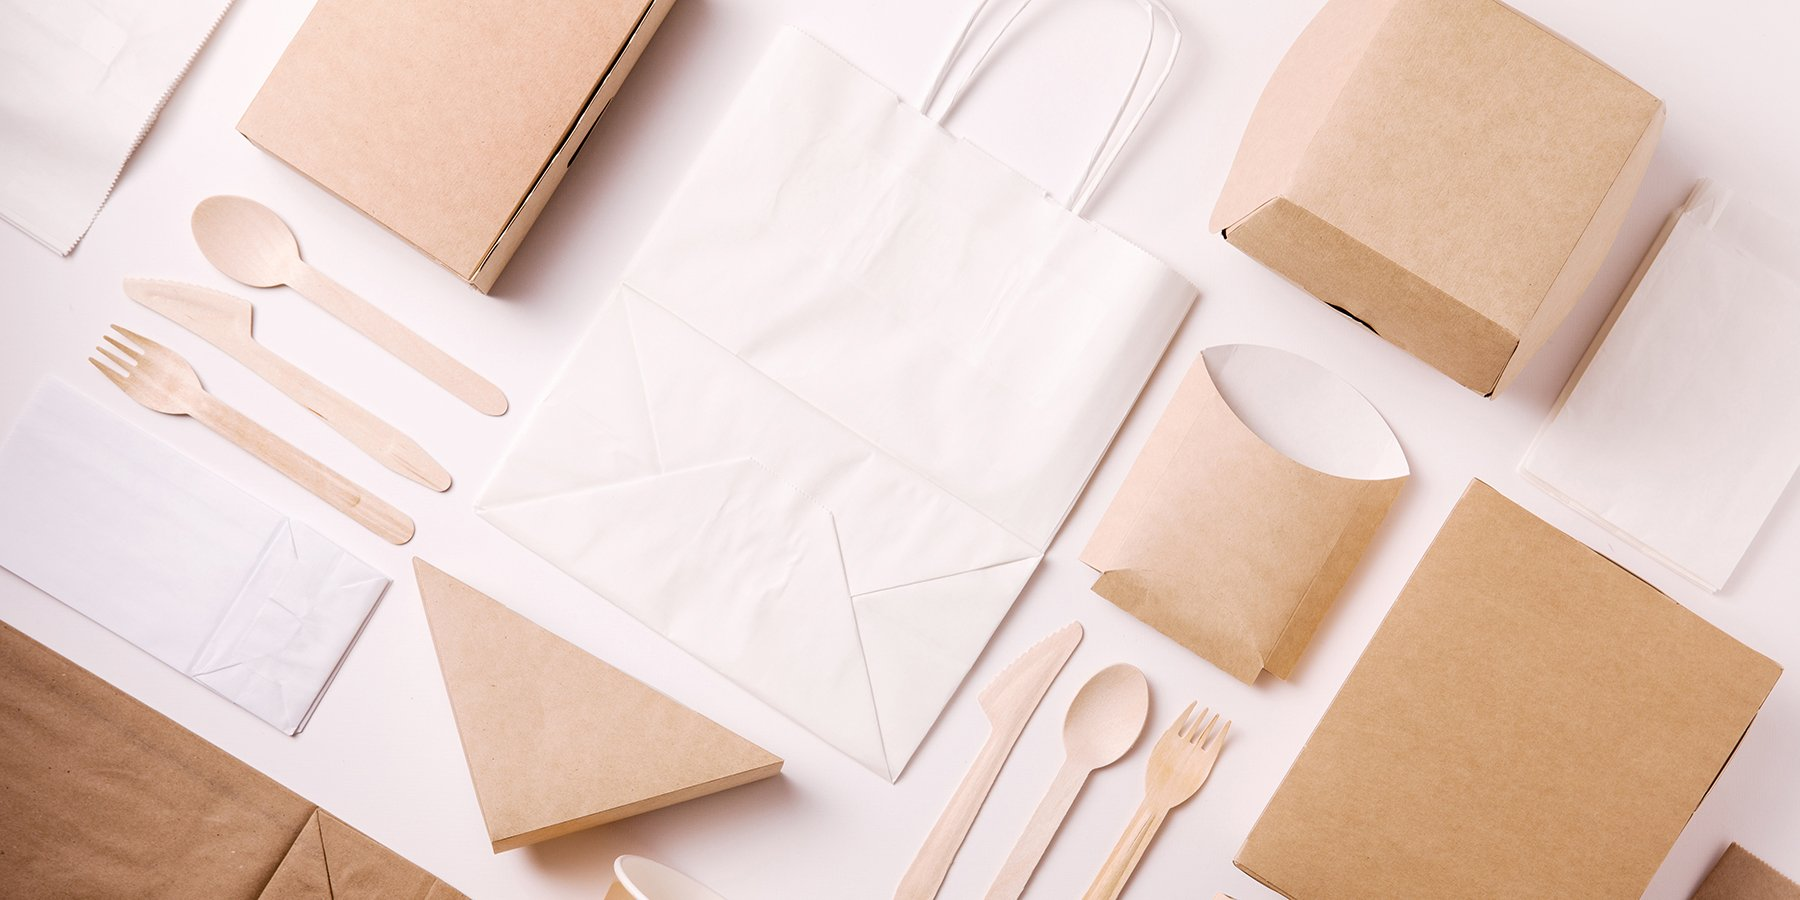 4 Environmentally Sustainable Packaging Trends Every Company Should Know